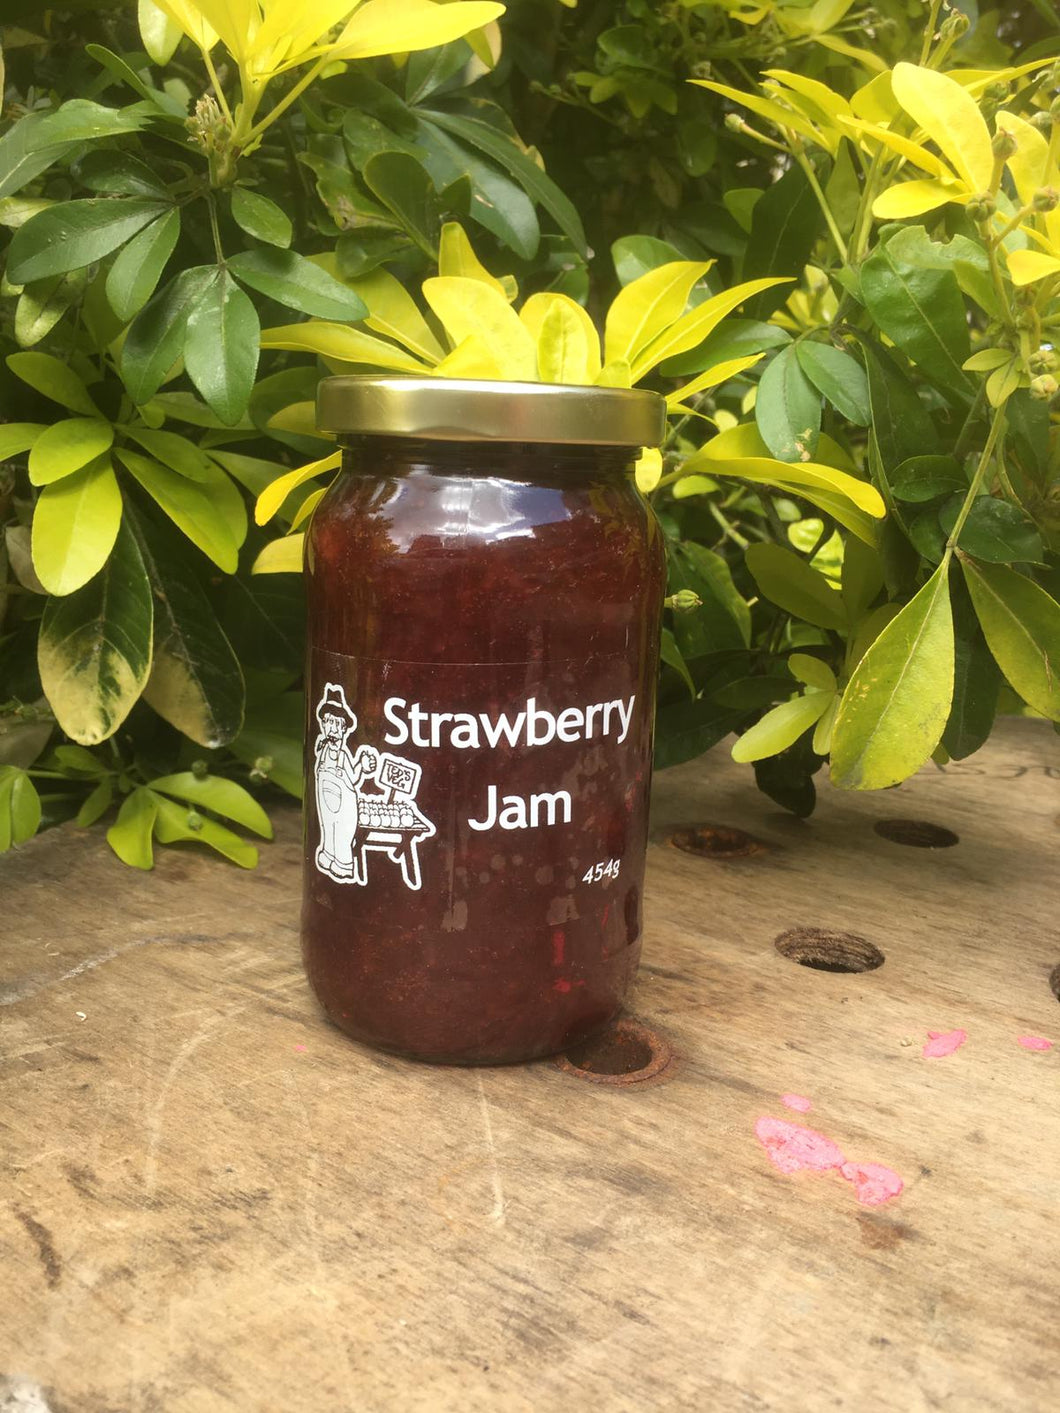 Ted's Veg - Strawberry Jam